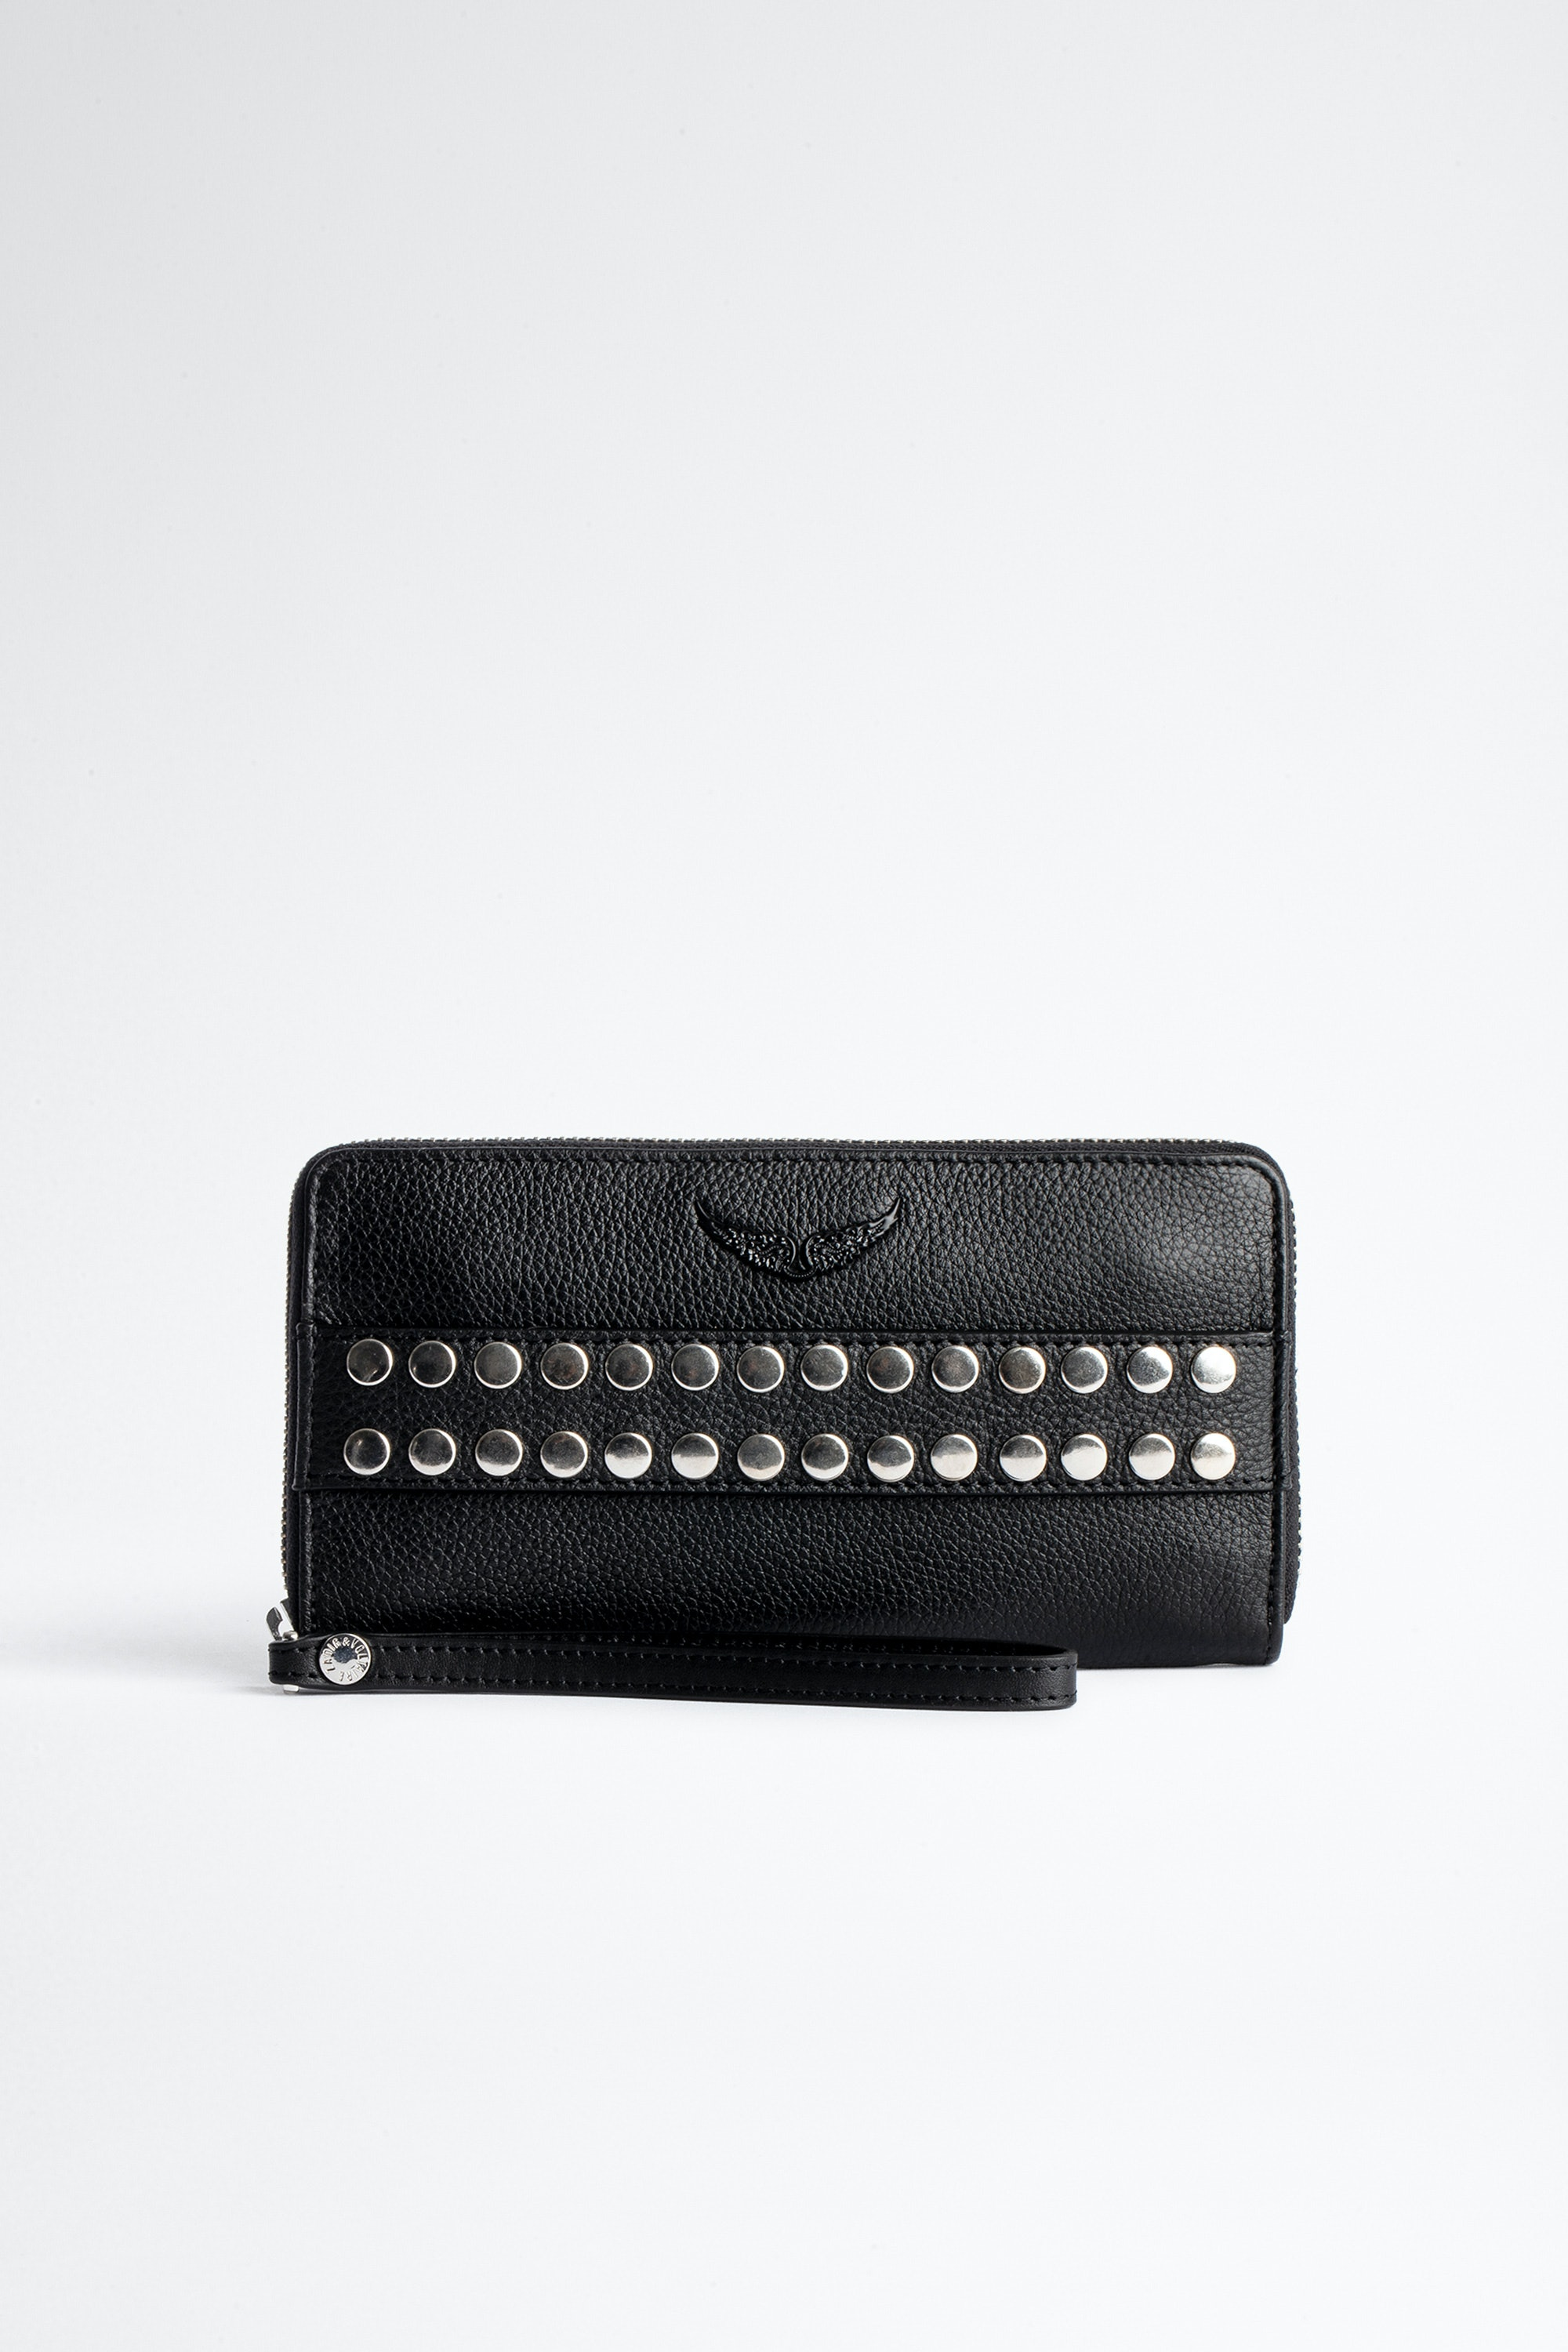 Cartera Compagnon Studs Outline